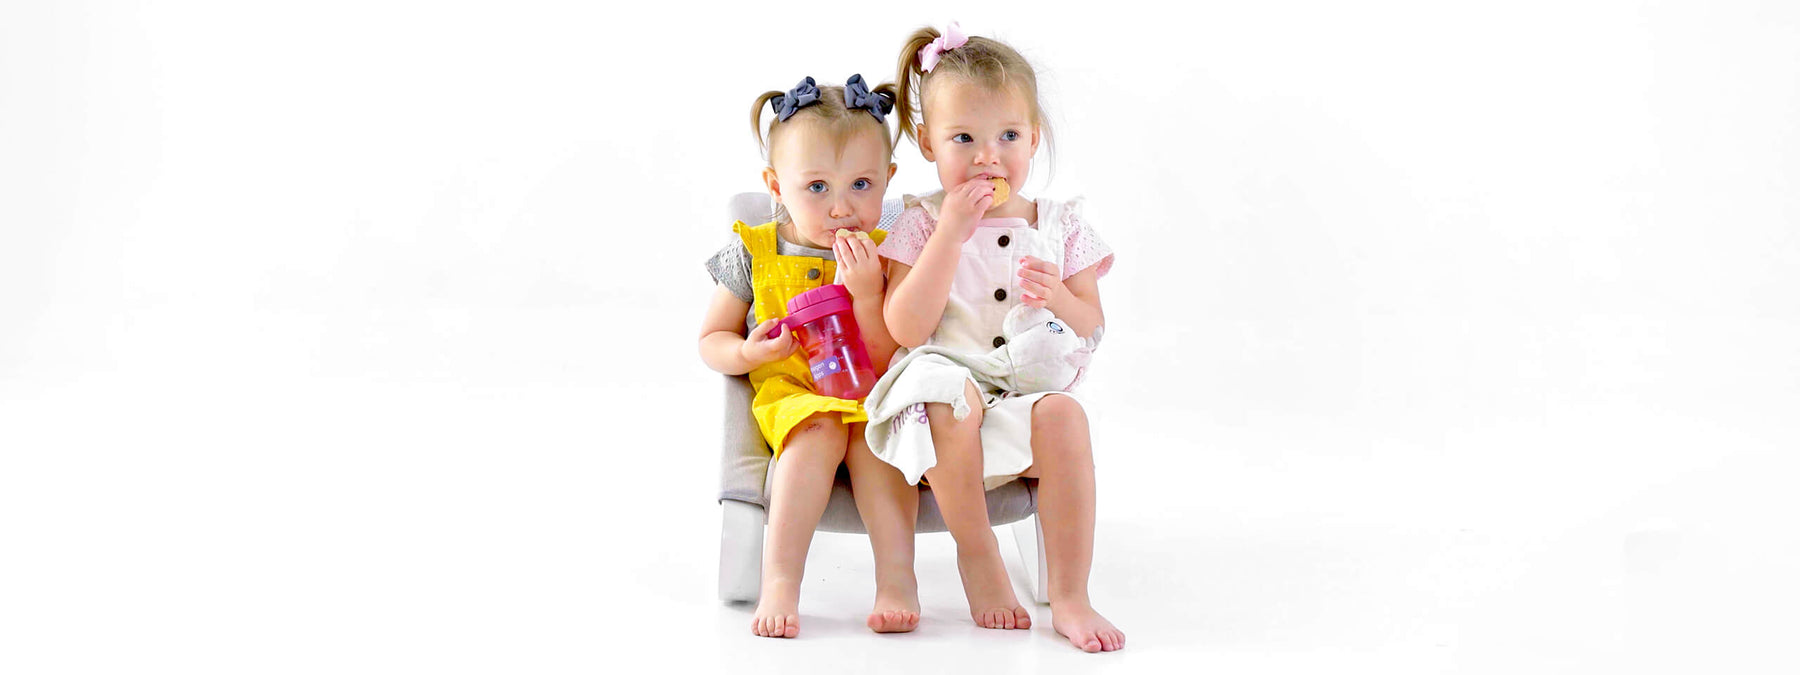 Baby rocker seat with two little girls eating cookies